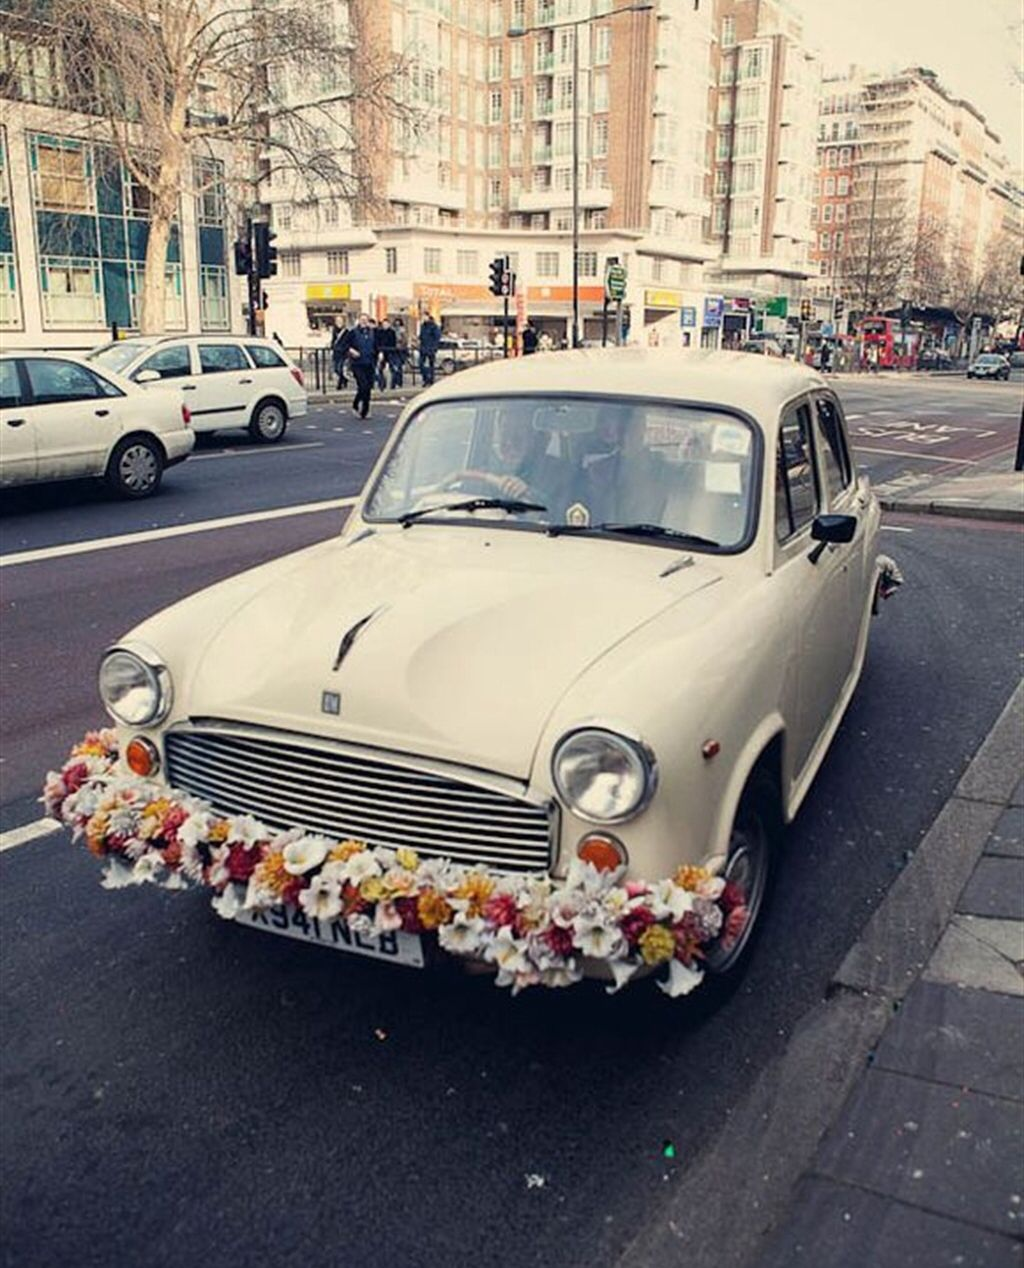 Altar Wedding Cars Timperley: Pin By Esca Rose On Someday This May Come In Handy! In